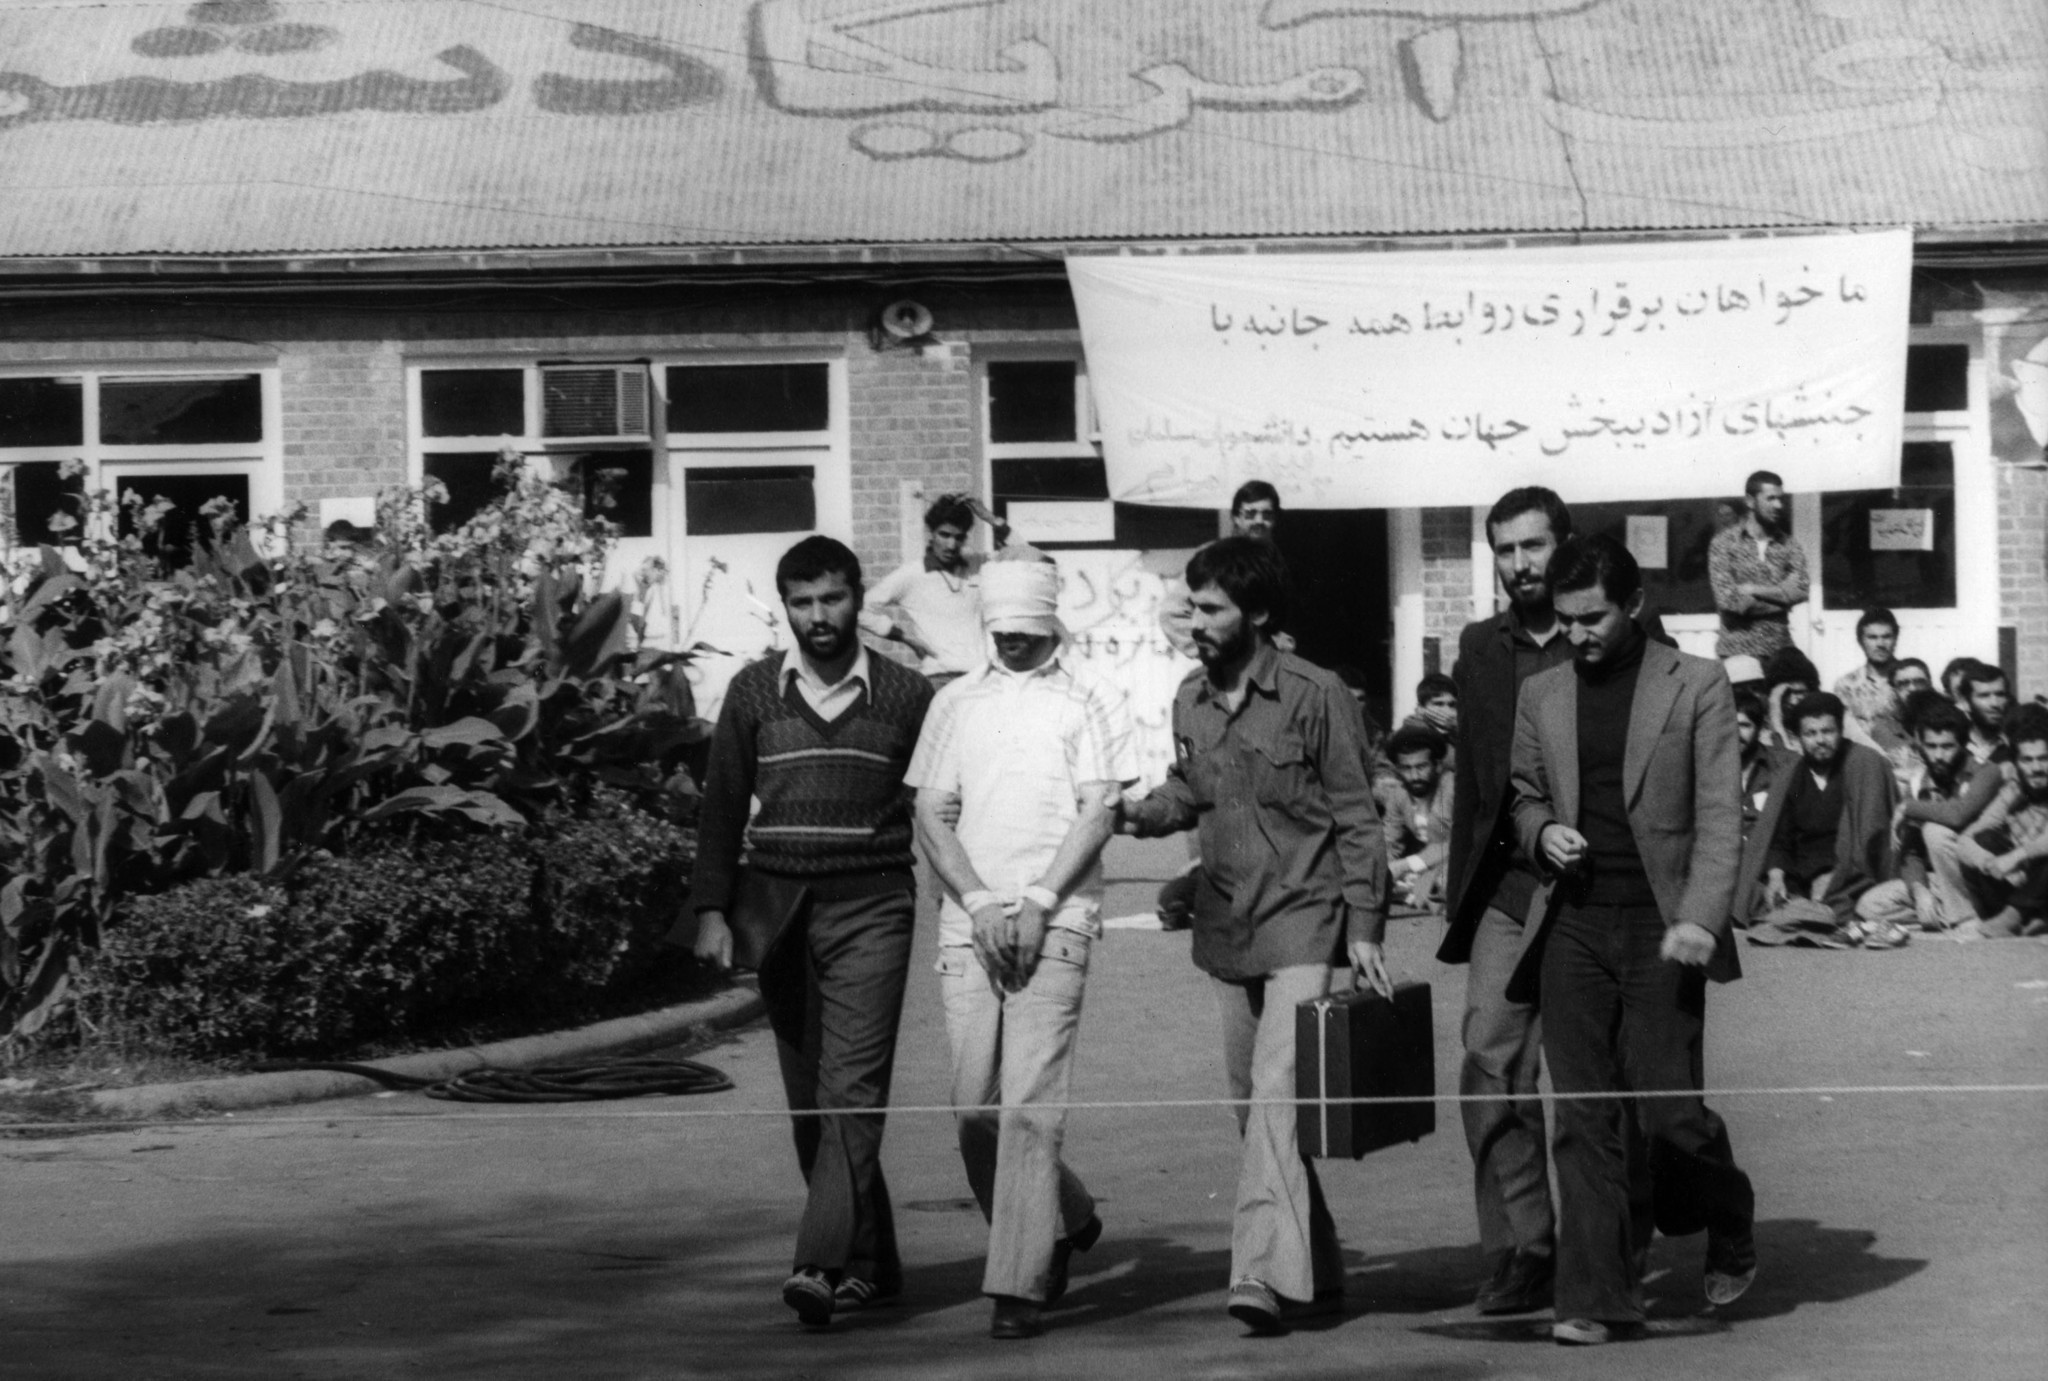 iran hostage crisis On november 4, 1979, an angry mob of young islamic revolutionaries overran the us embassy in tehran, taking more than 60 americans hostage from the moment the.